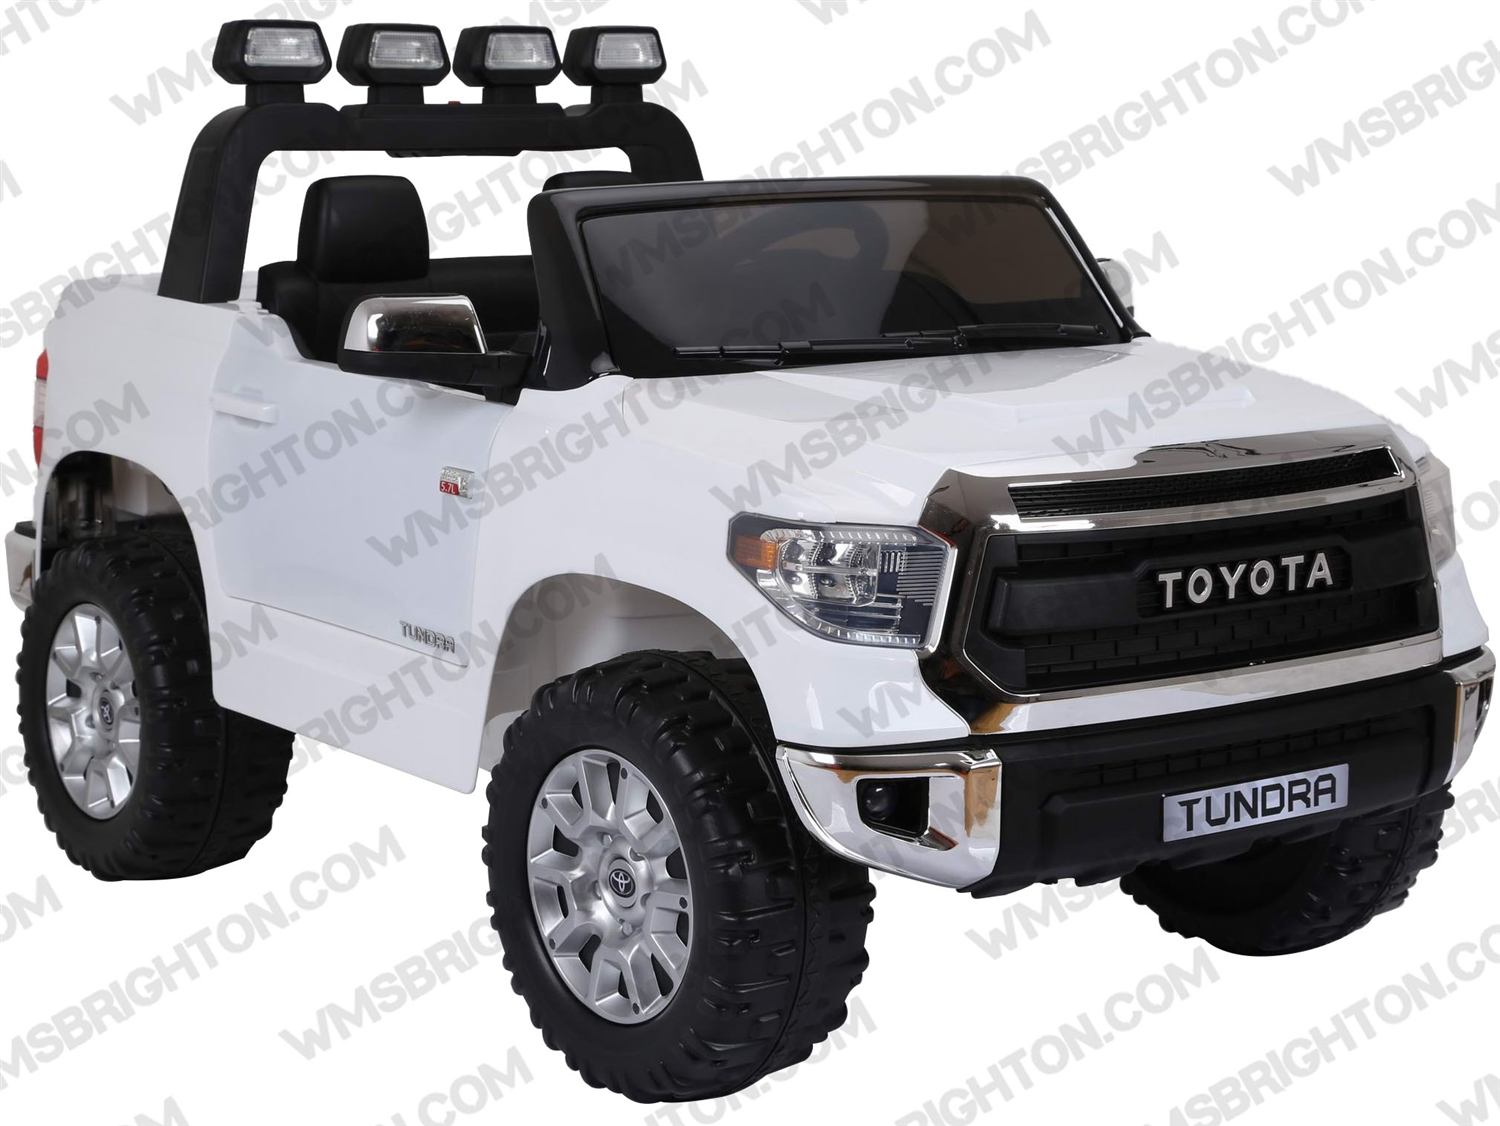 Led Lights For Trucks Toyota Tundra 12v Kids Battery Operated Ride On Truck W Remote Control Led Lights Player Aux